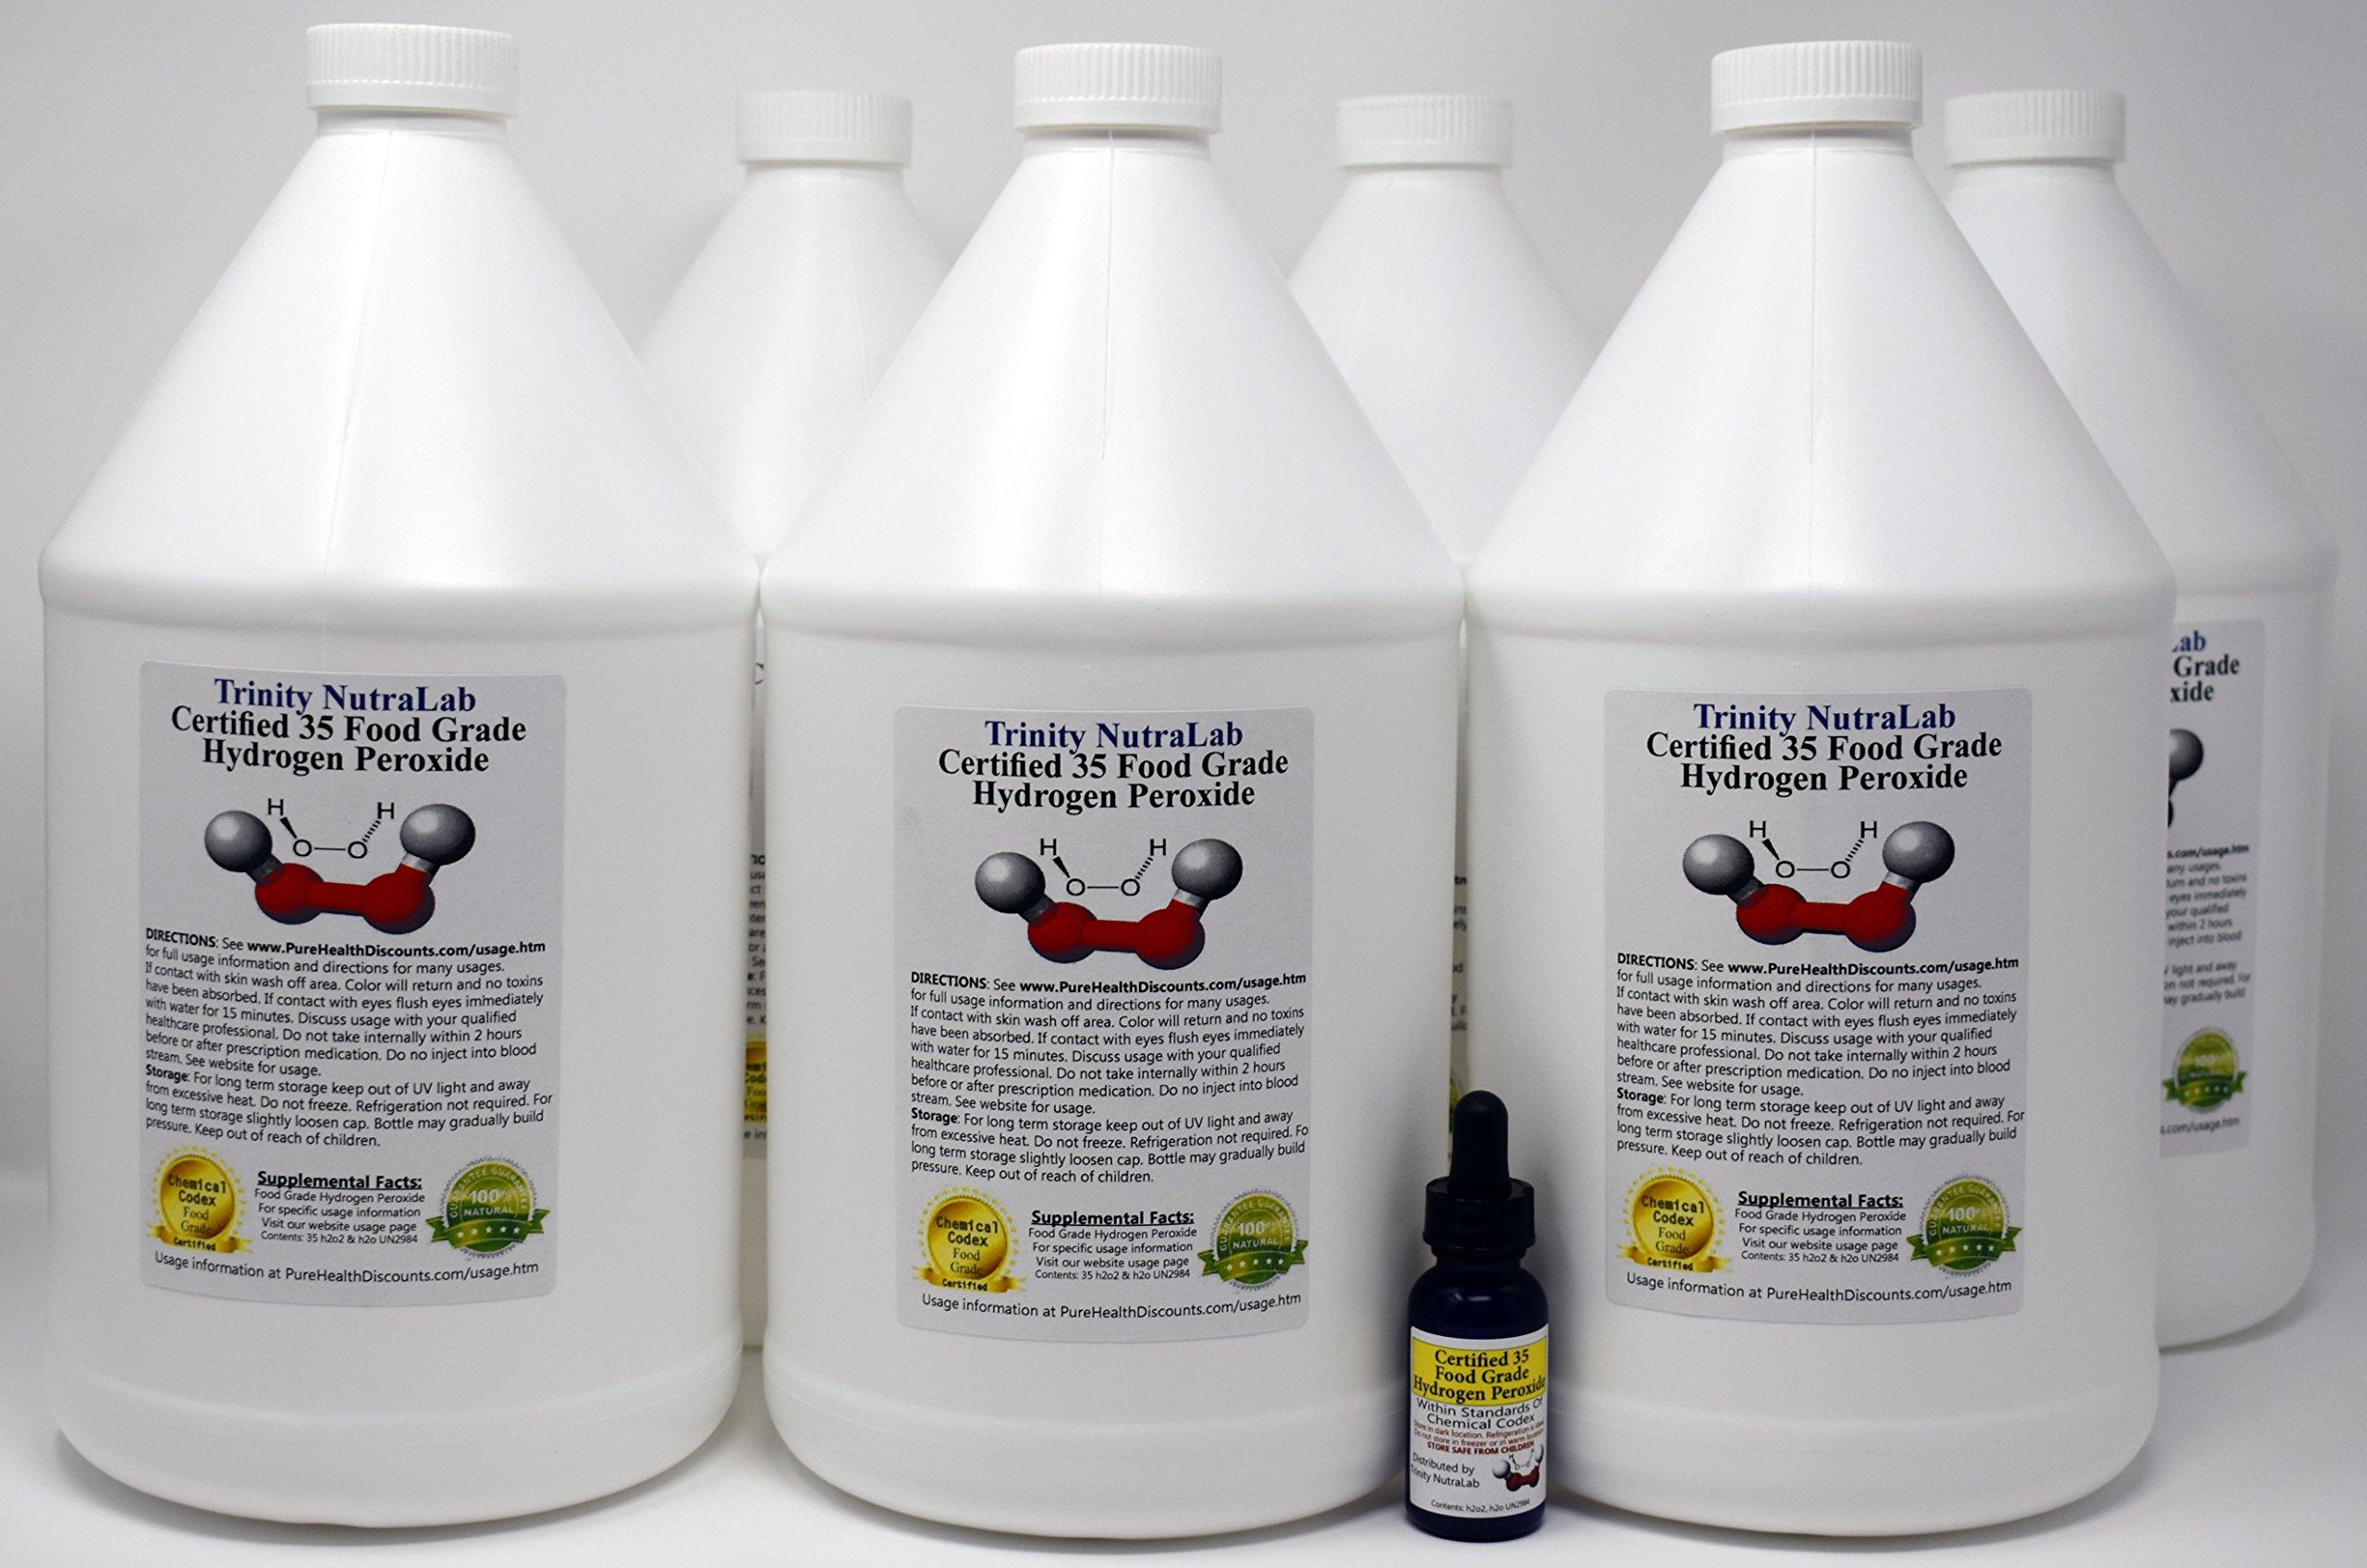 6 Gallons of TNL Certified 35% Food Grade Hydrogen Peroxide on sale. This is the Best on the Market with Free 1 Ounce Dropper Bottle filled with H2o2 by Trinity Nutralab